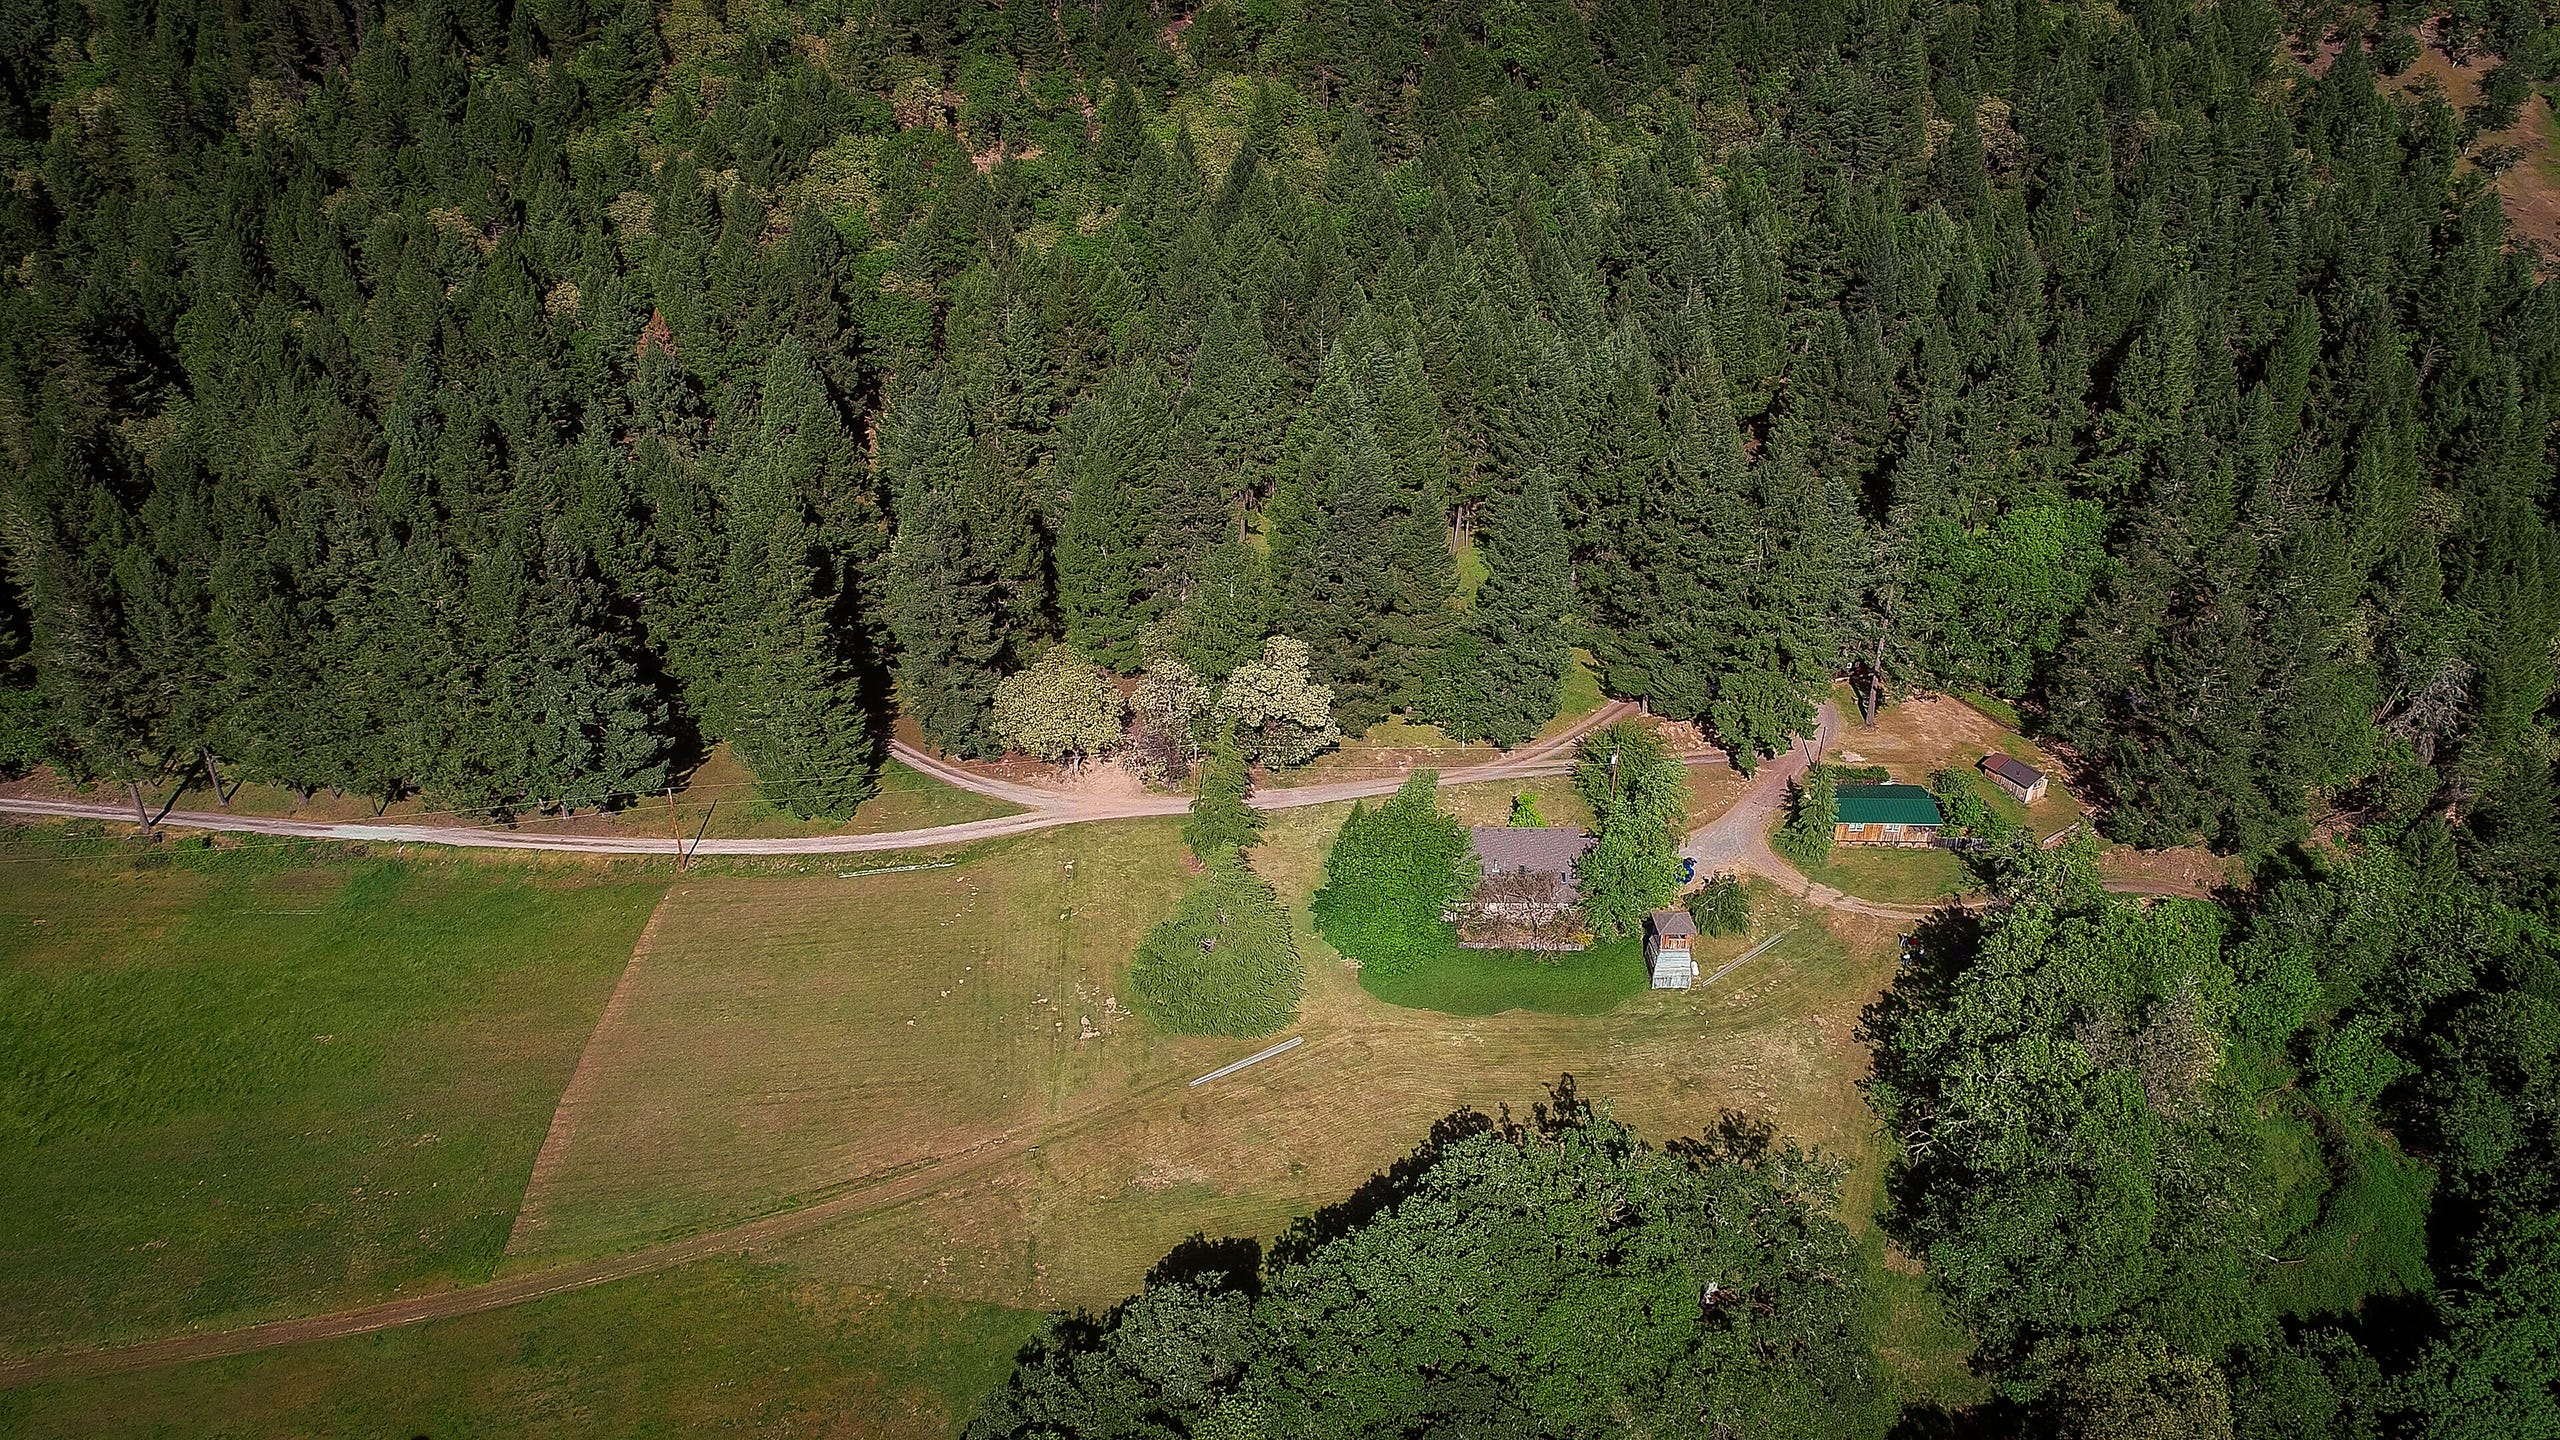 Open space protects the Doubletree Ranch near Merlin. During the 2018 wildfire season, fires threatened, but never came on to the property. Since then, owners Rick and Carol Ponte continue to remove flammable brush.